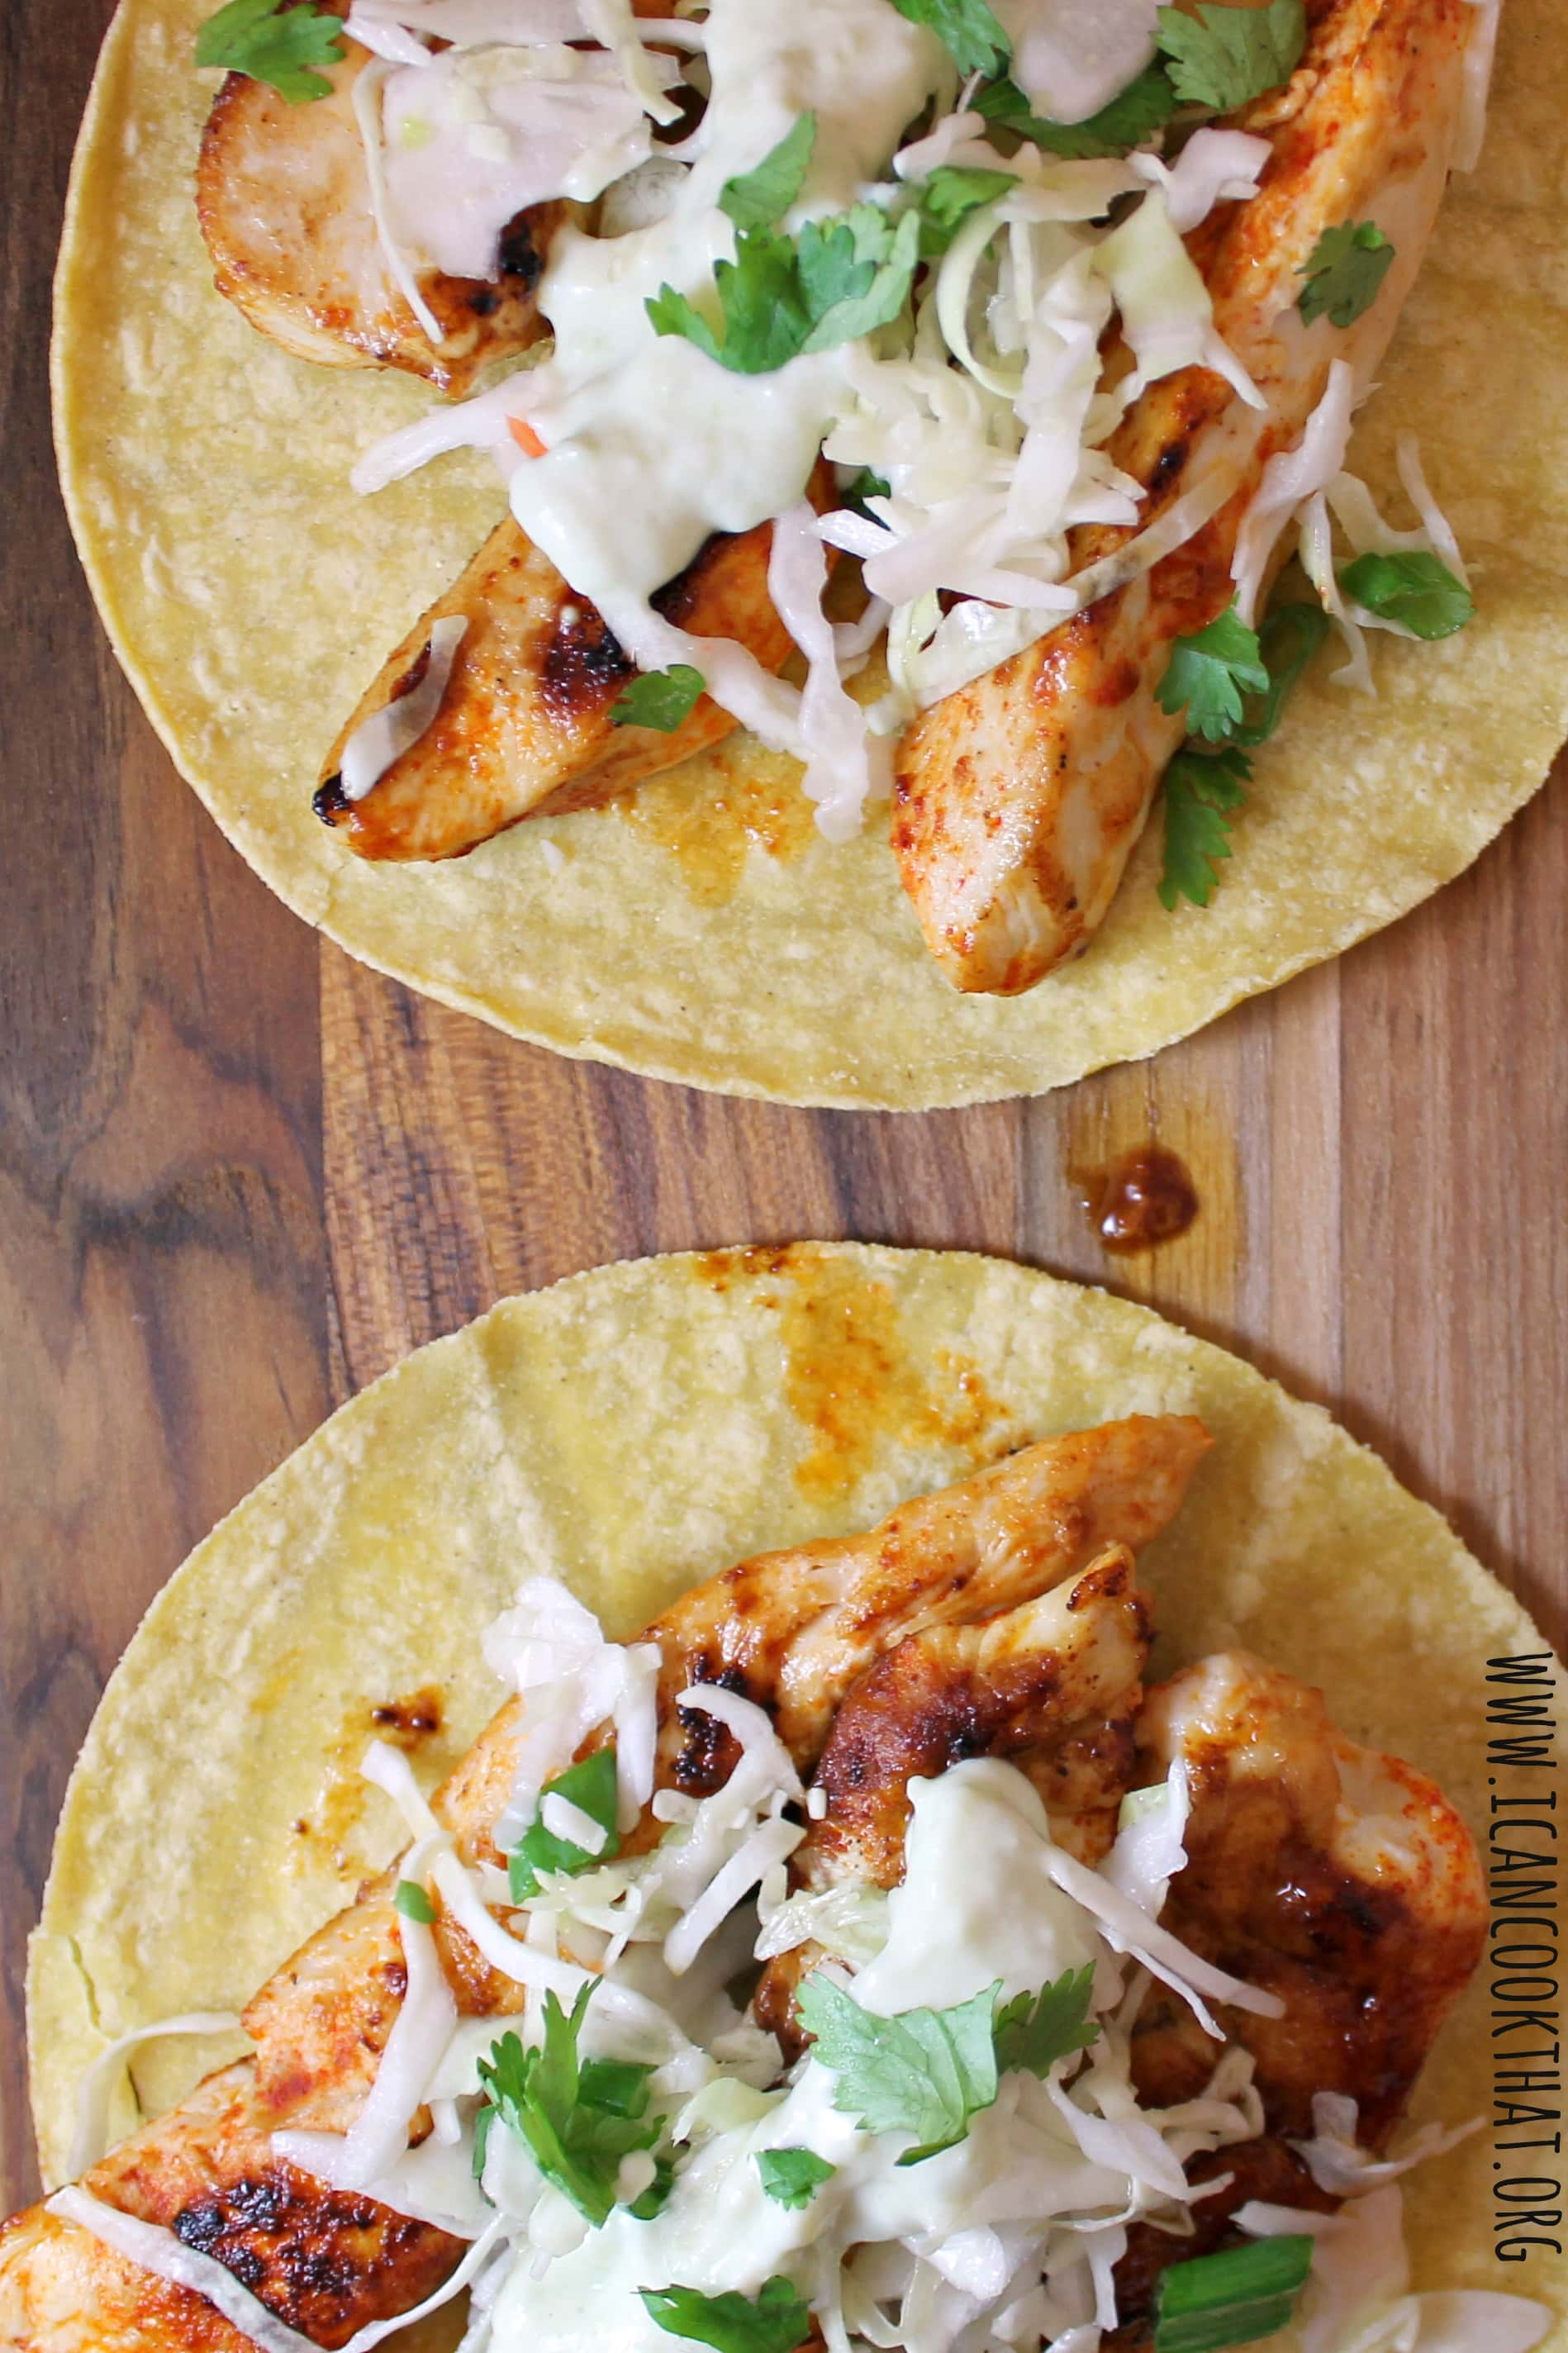 Ancho chicken tacos with cilantro slaw and avocado cream recipe i ancho chicken tacos with cilantro slaw and avocado cream forumfinder Image collections